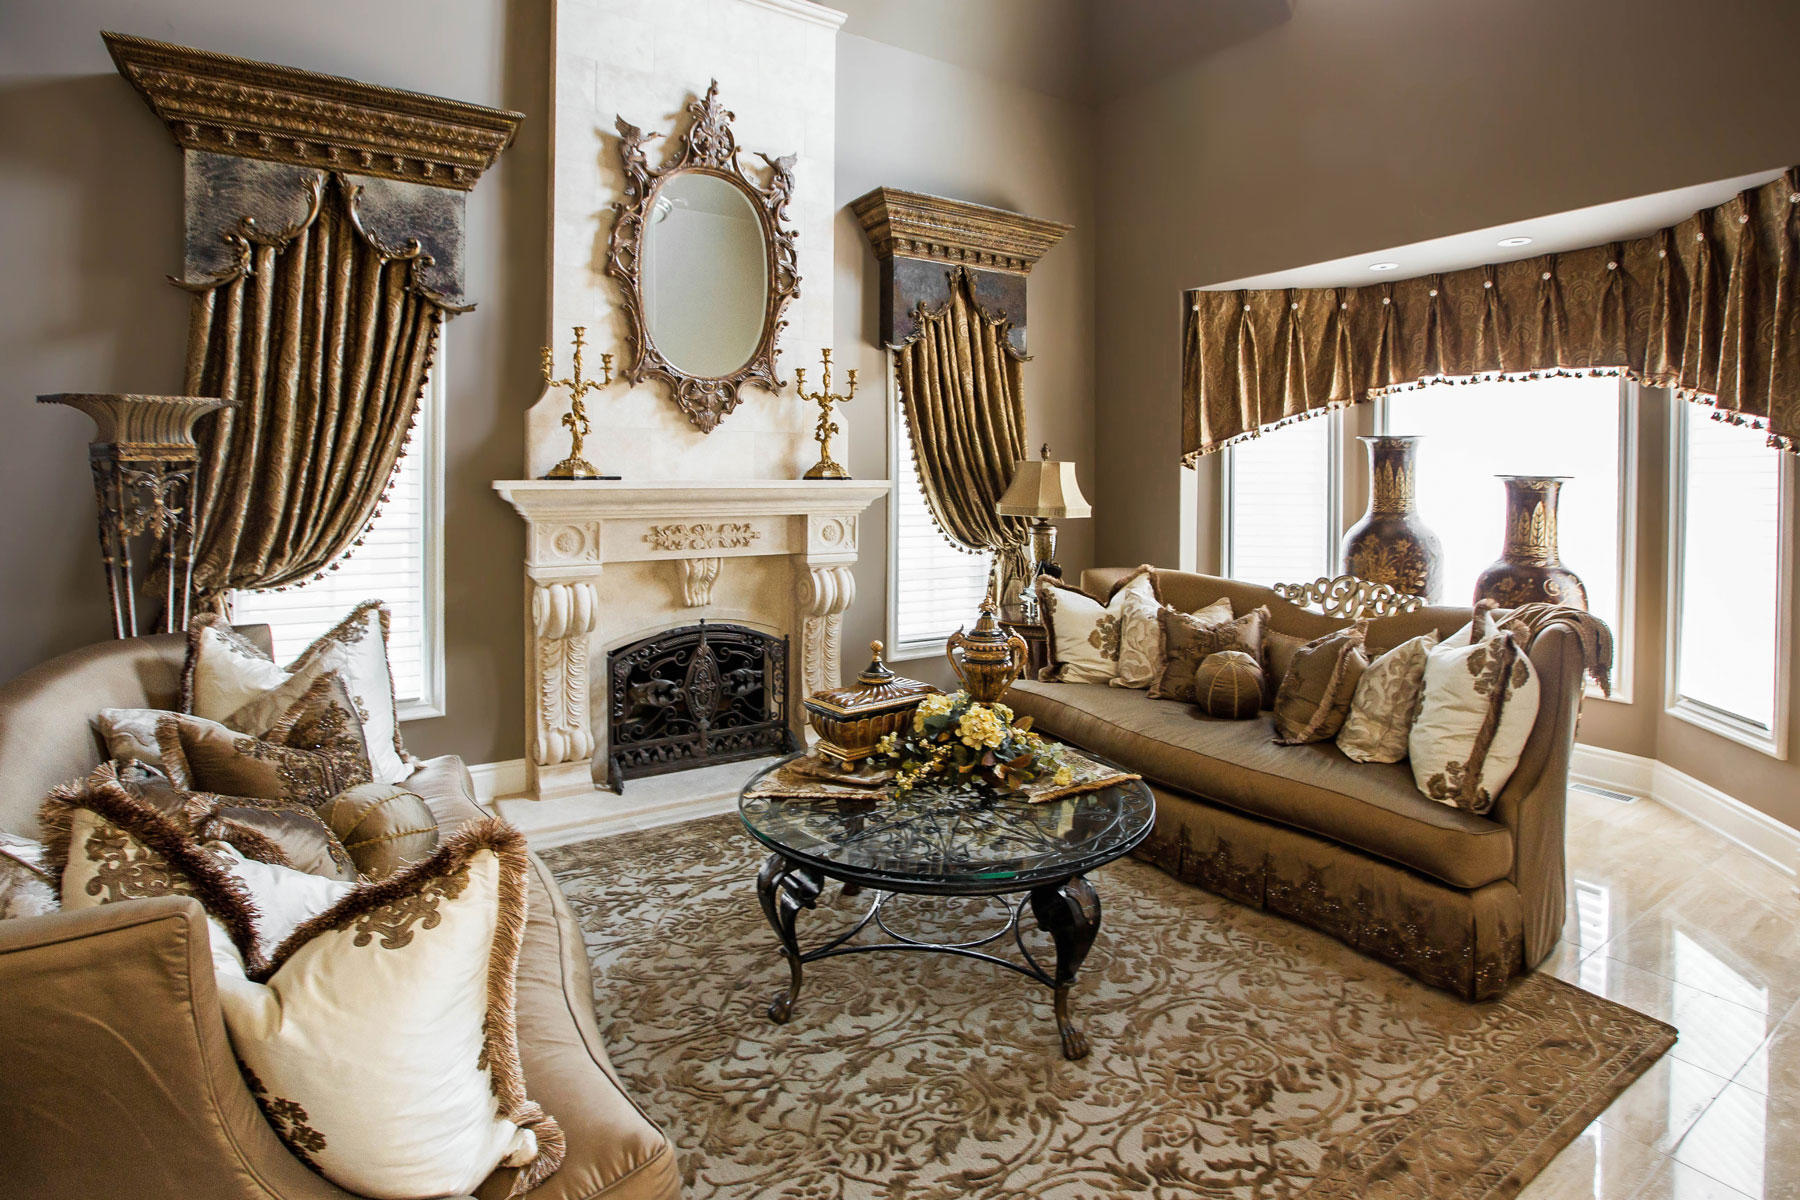 Living Room and Family Room Design - Linly Designs